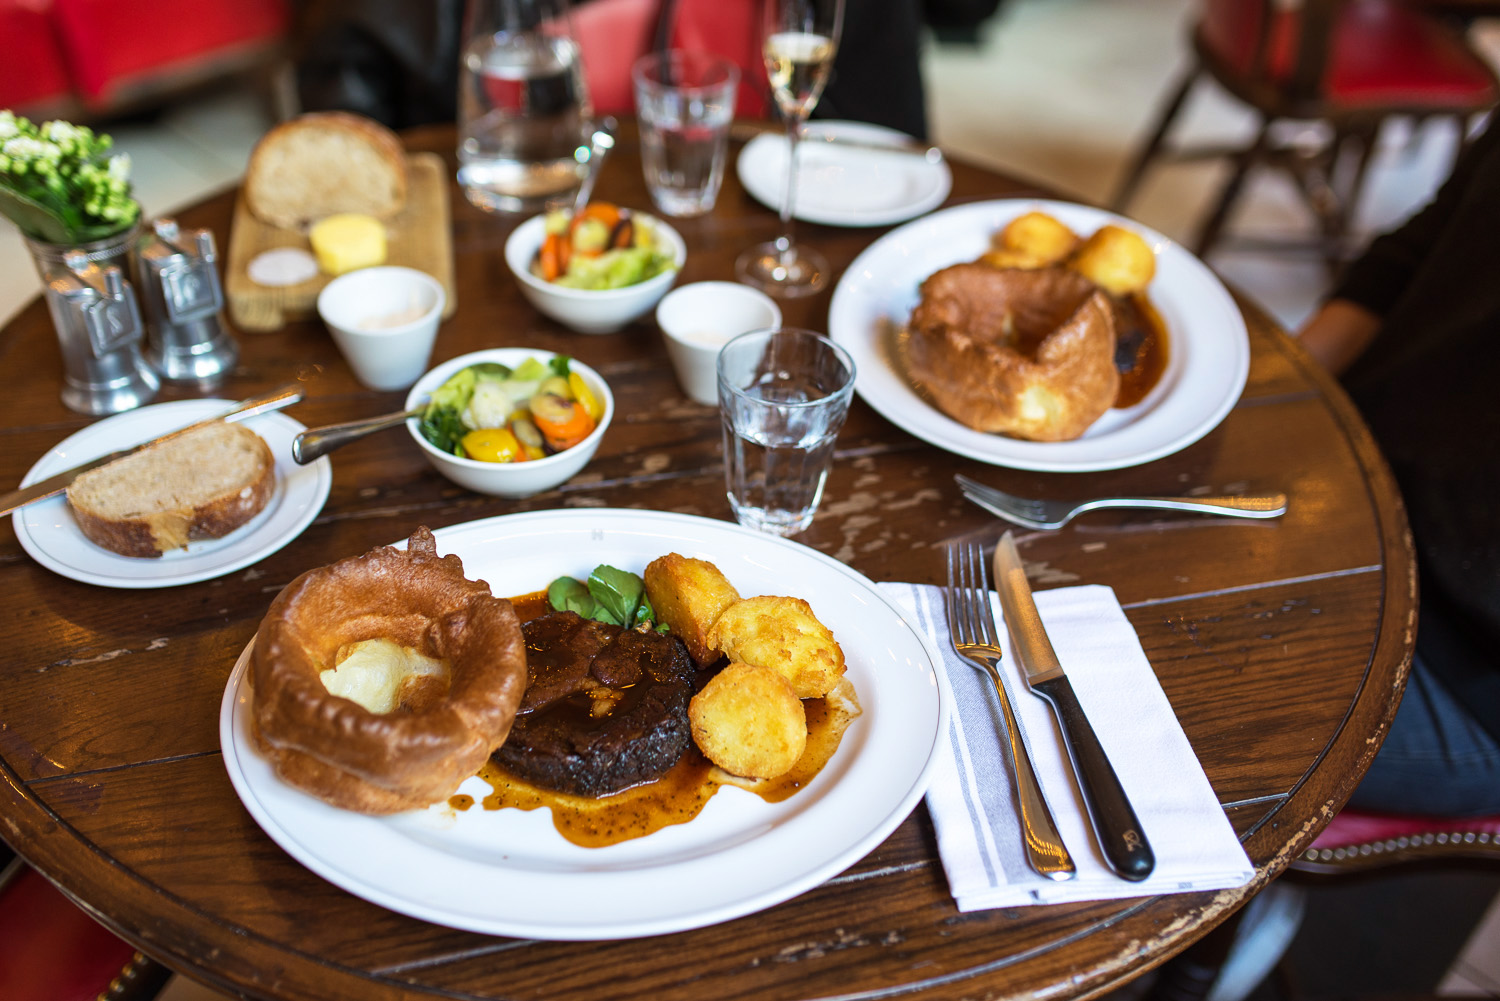 sunday roast at holborn dining room - mondomulia